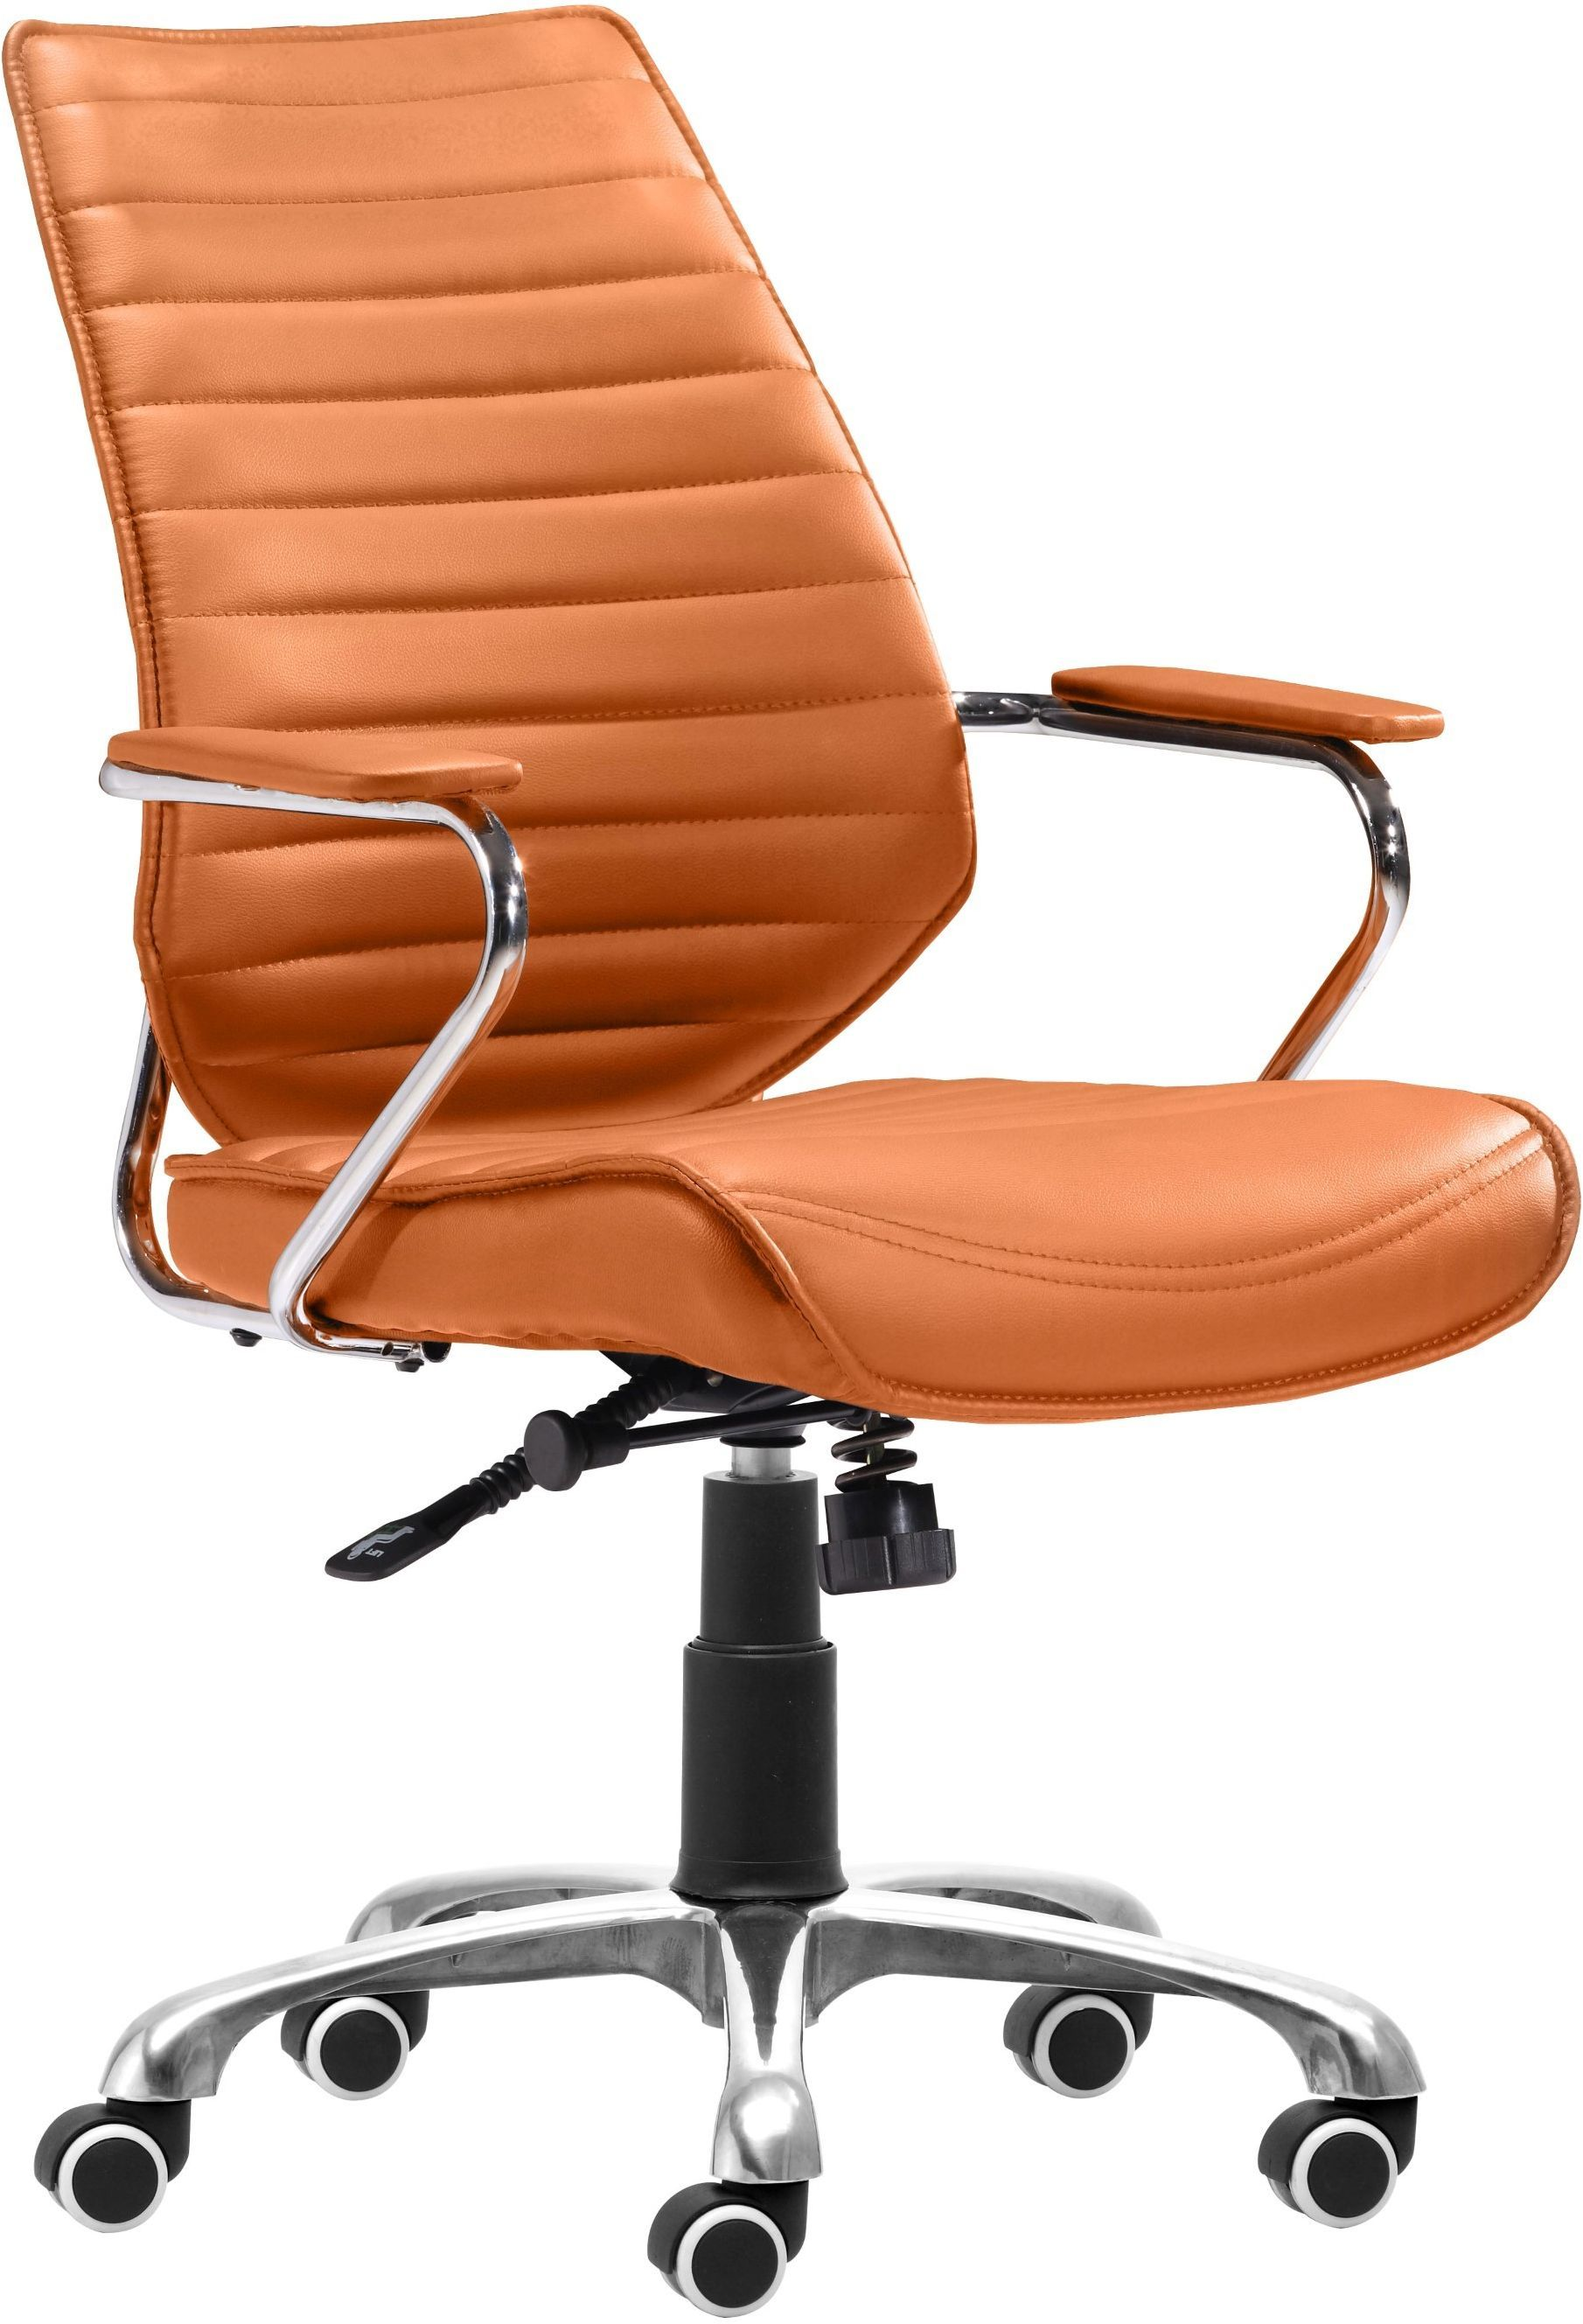 Orange Office Chairs Enterprise Office Chair Terracotta